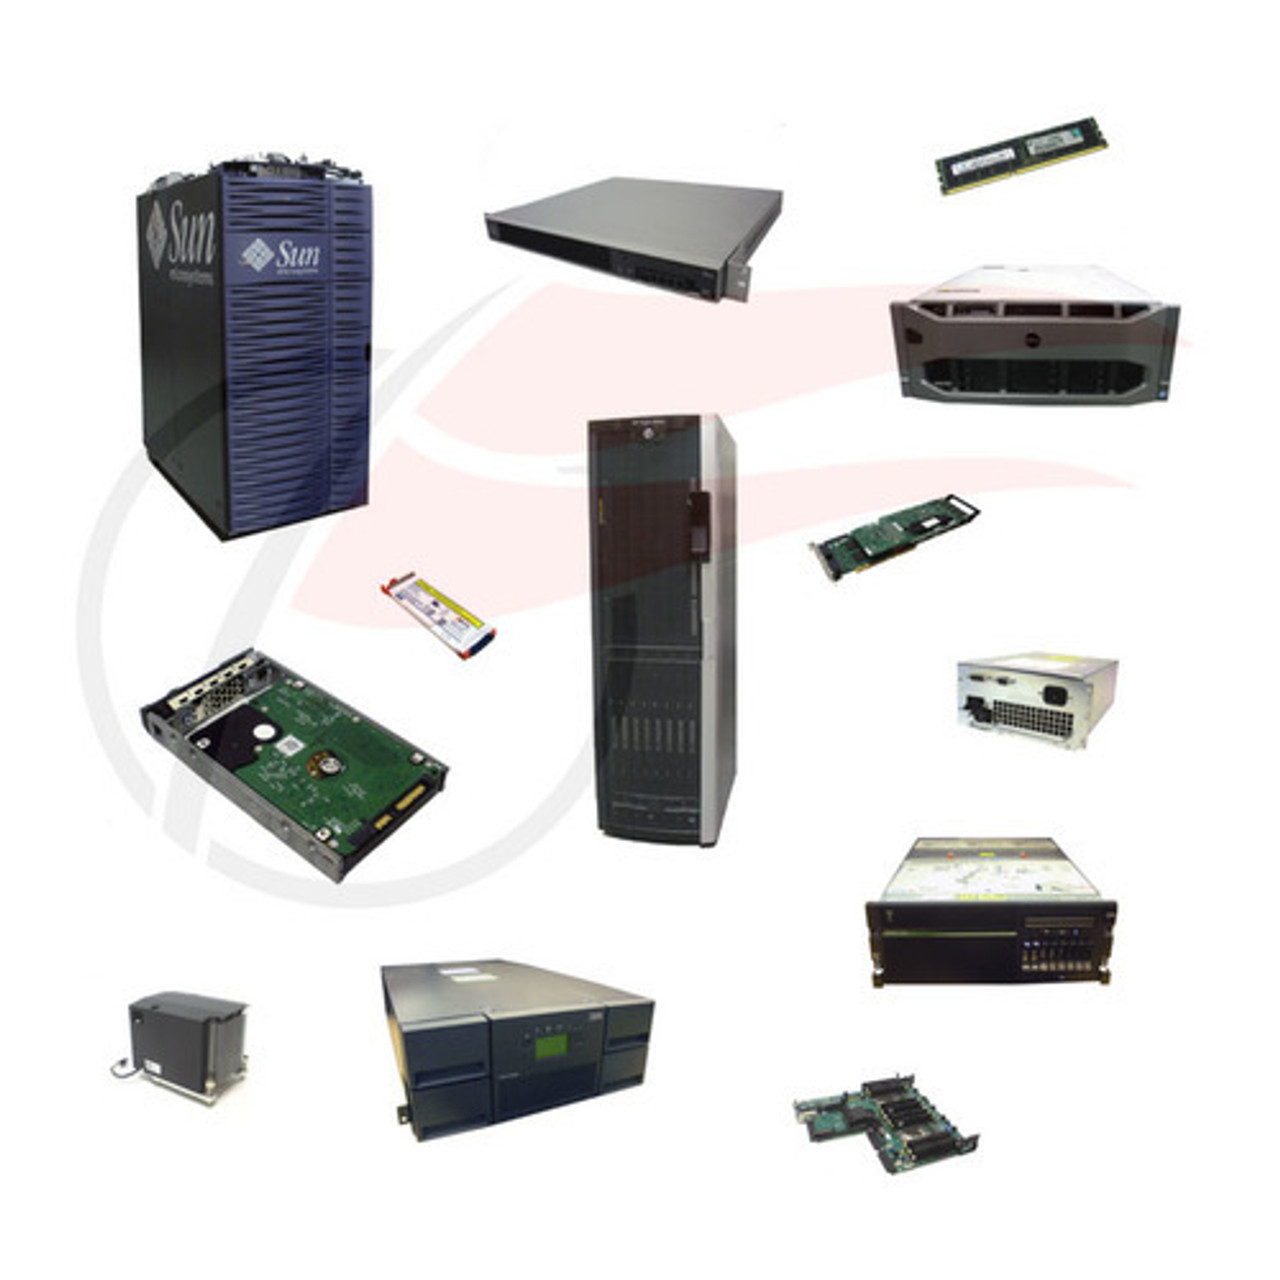 IBM AS/400 iSeries Spare Parts